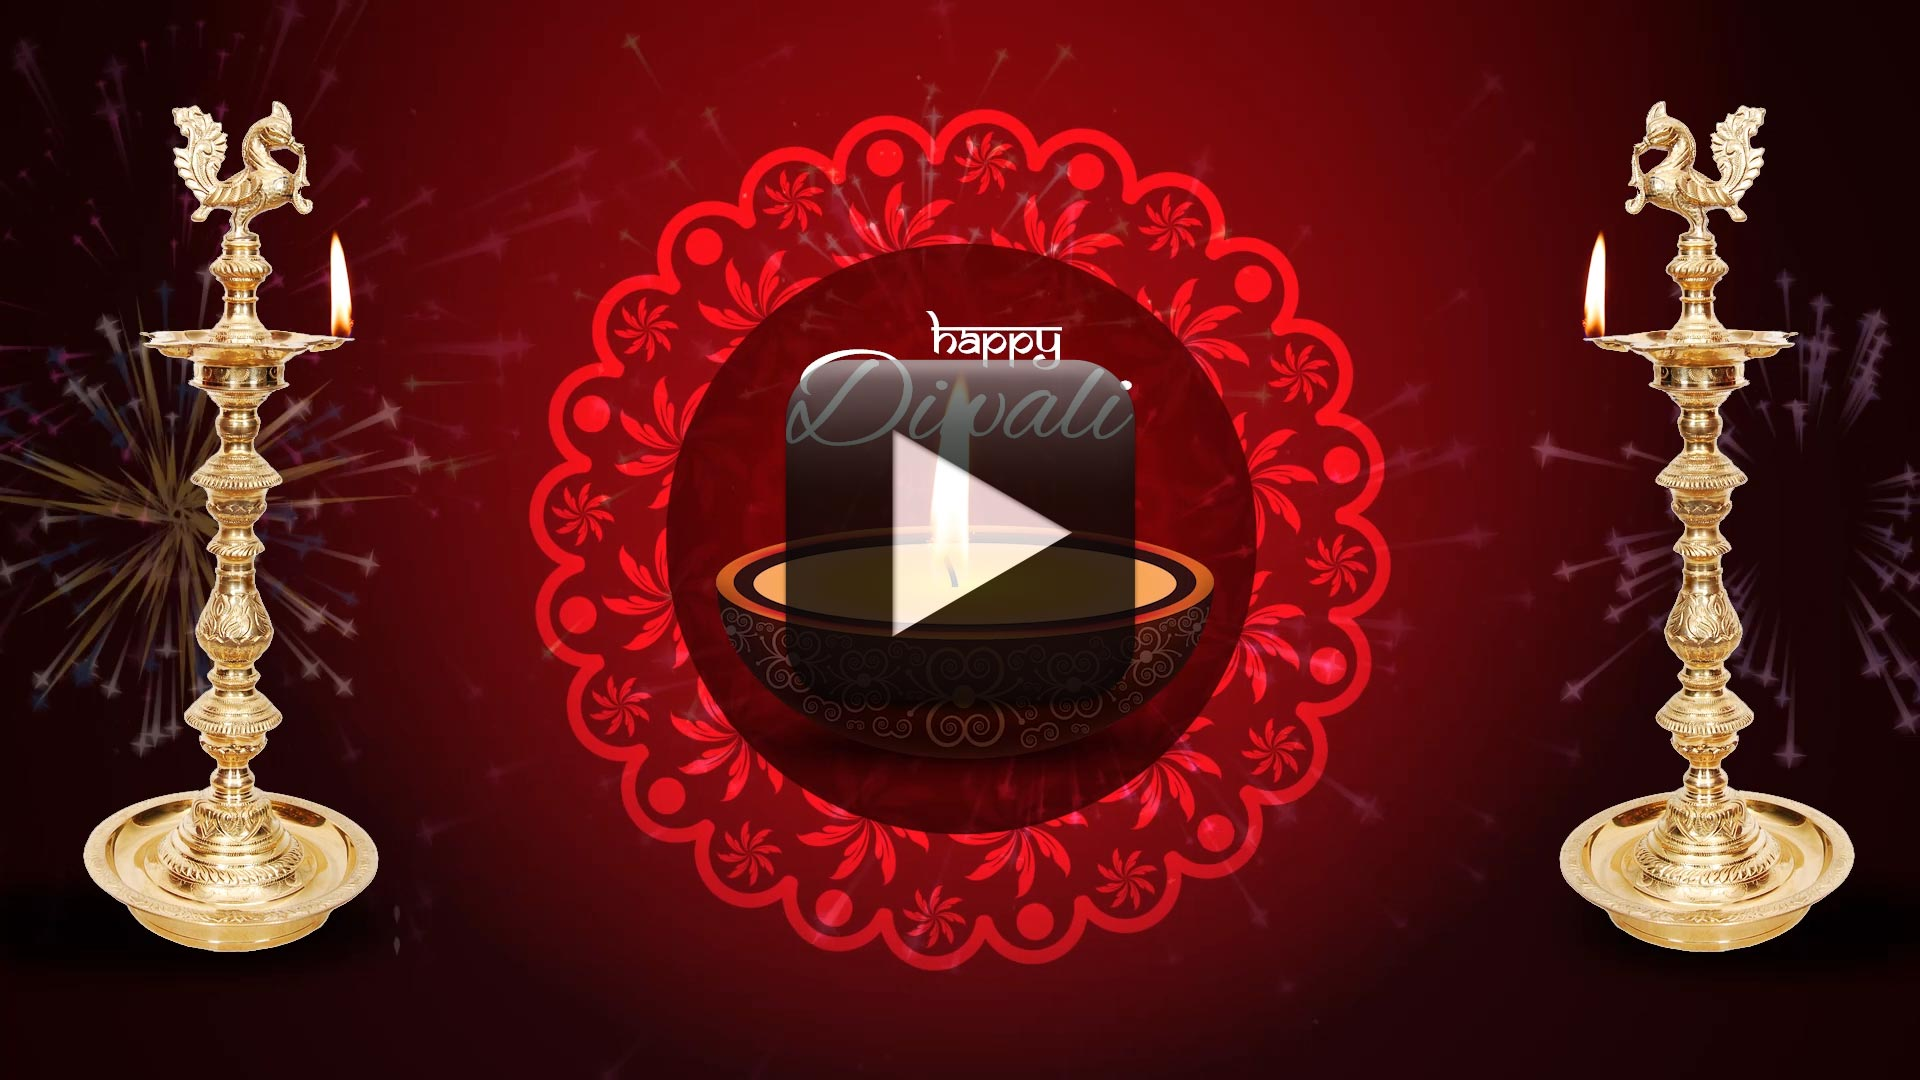 Wish You Happy Diwali Video Free Download Greetings Animation All